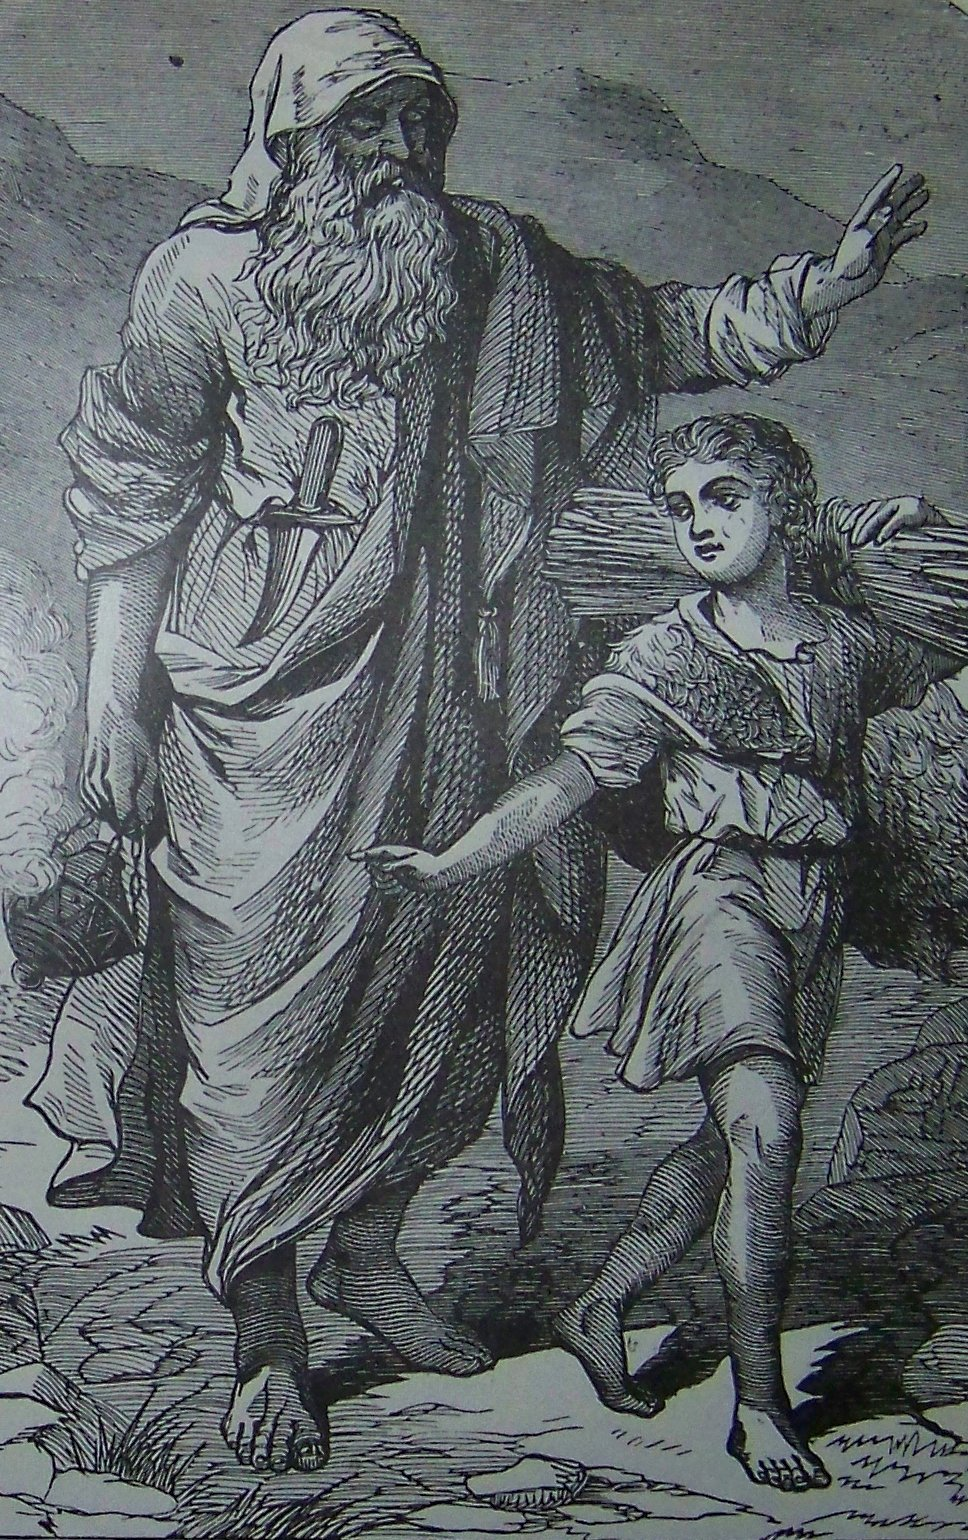 Abraham going up to offer Isaac as a sacrifice, as in Genesis 22, illustration from the 1890 Holman Bible.